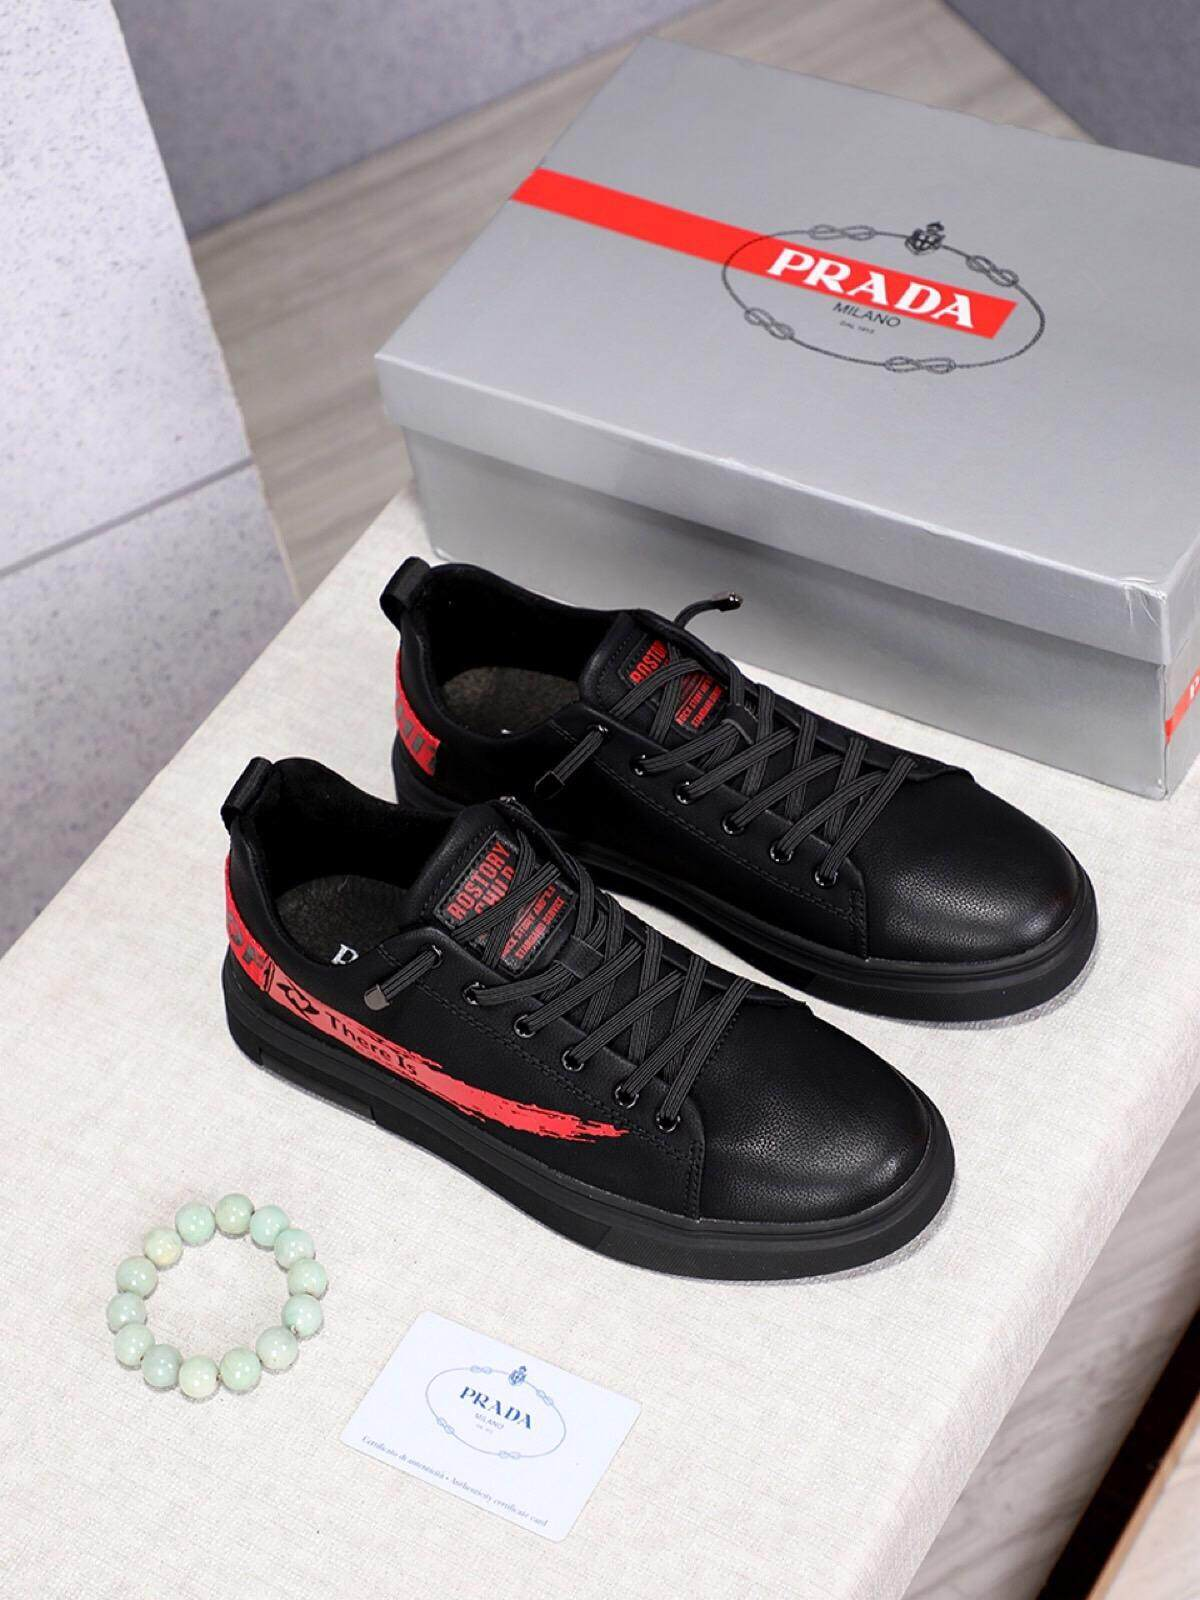 d7e6a19e Prada classic hot style high-end sports shoes for men